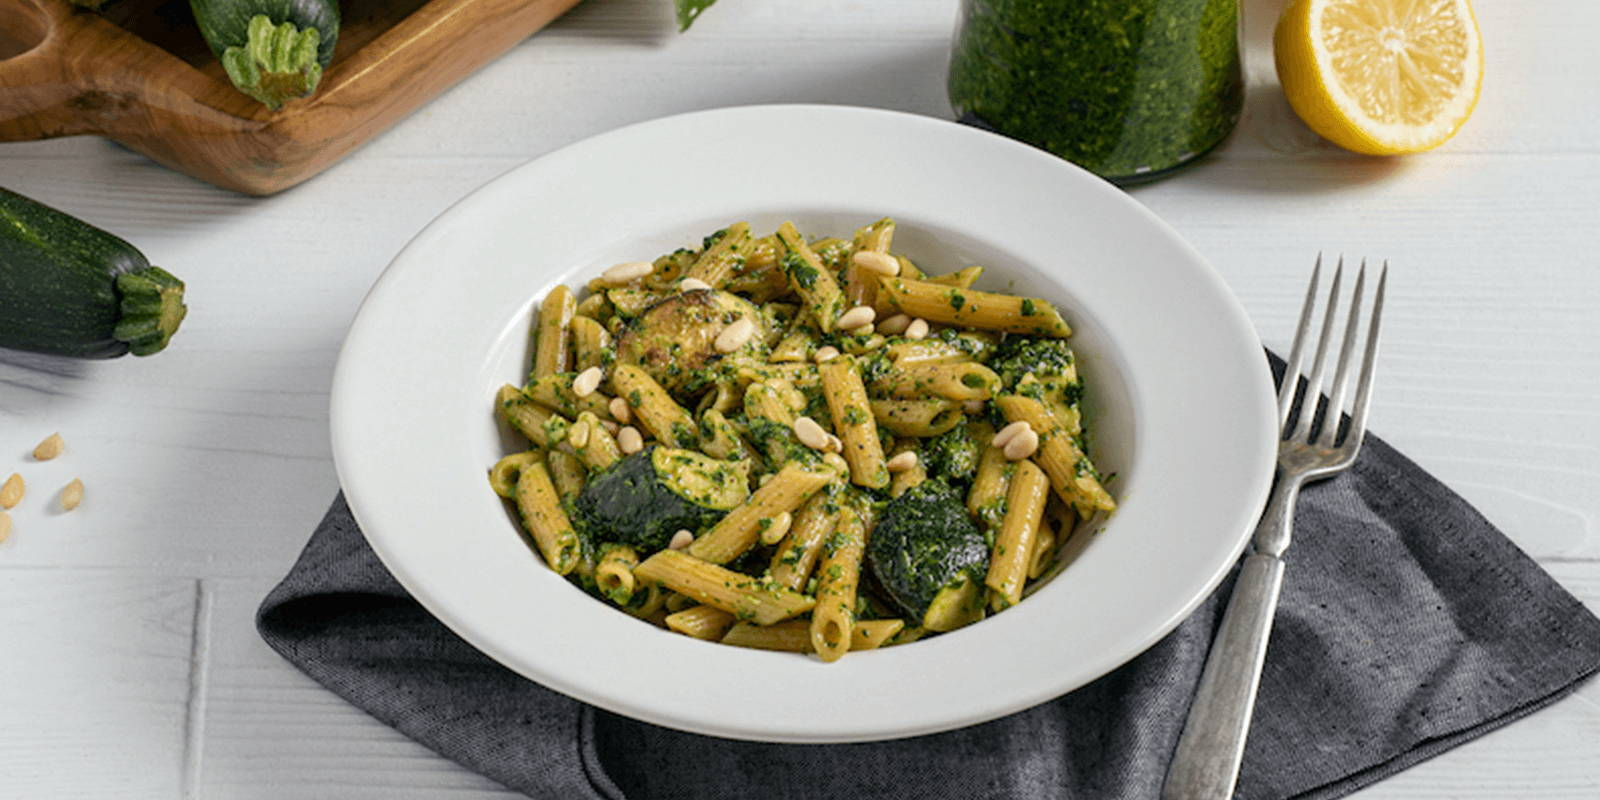 Caramelized Zucchini & ZENB Penne With Effortless Summer Pesto.